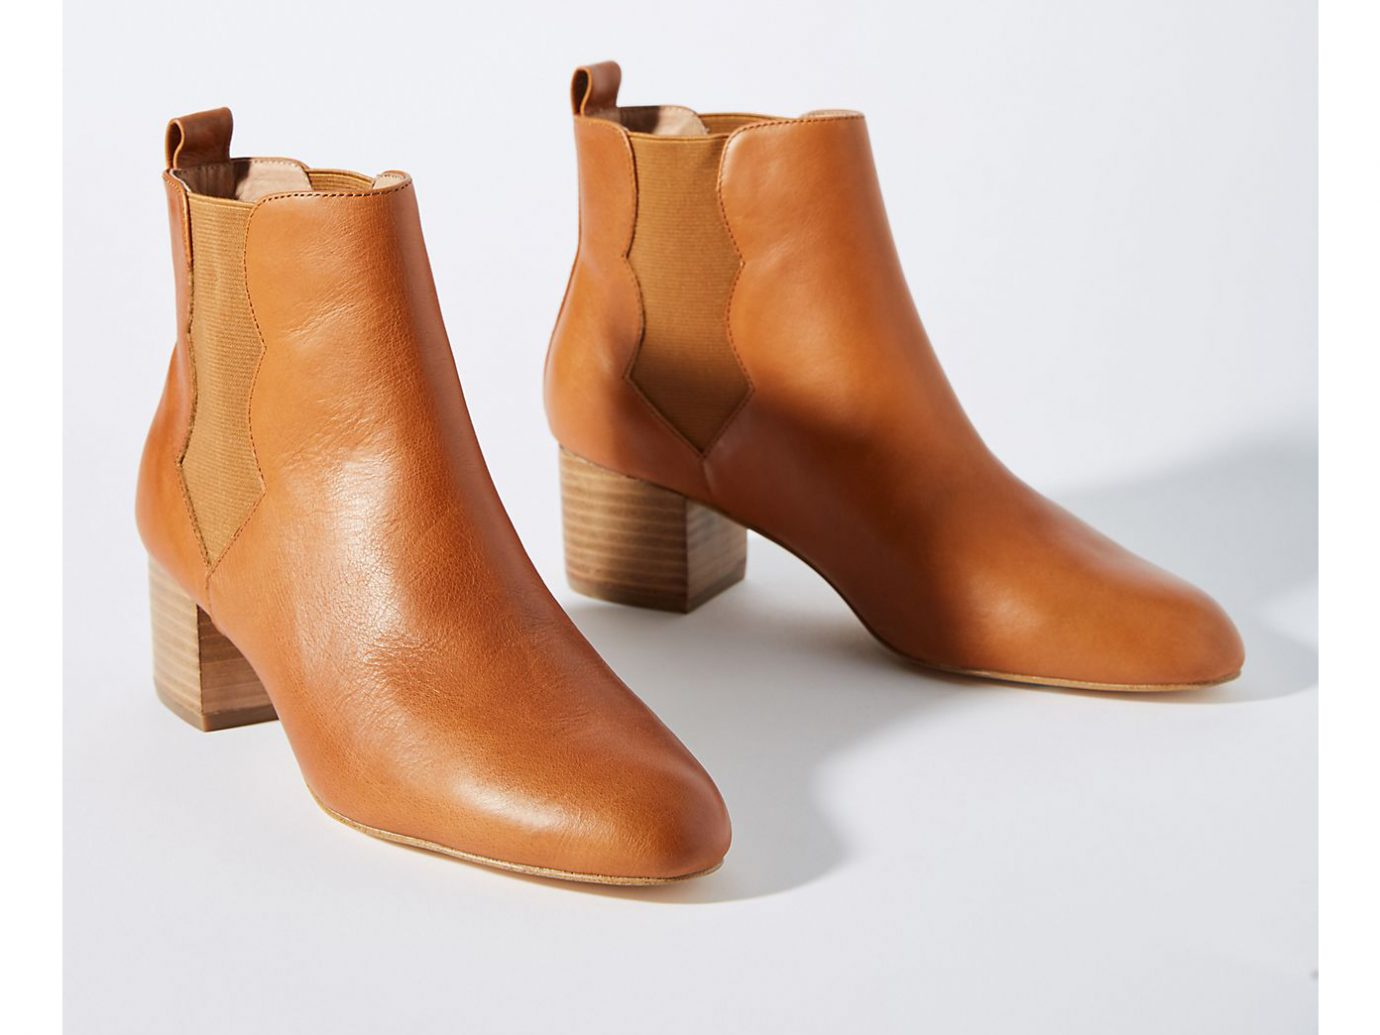 Anthropologie Joanne Ankle Boots